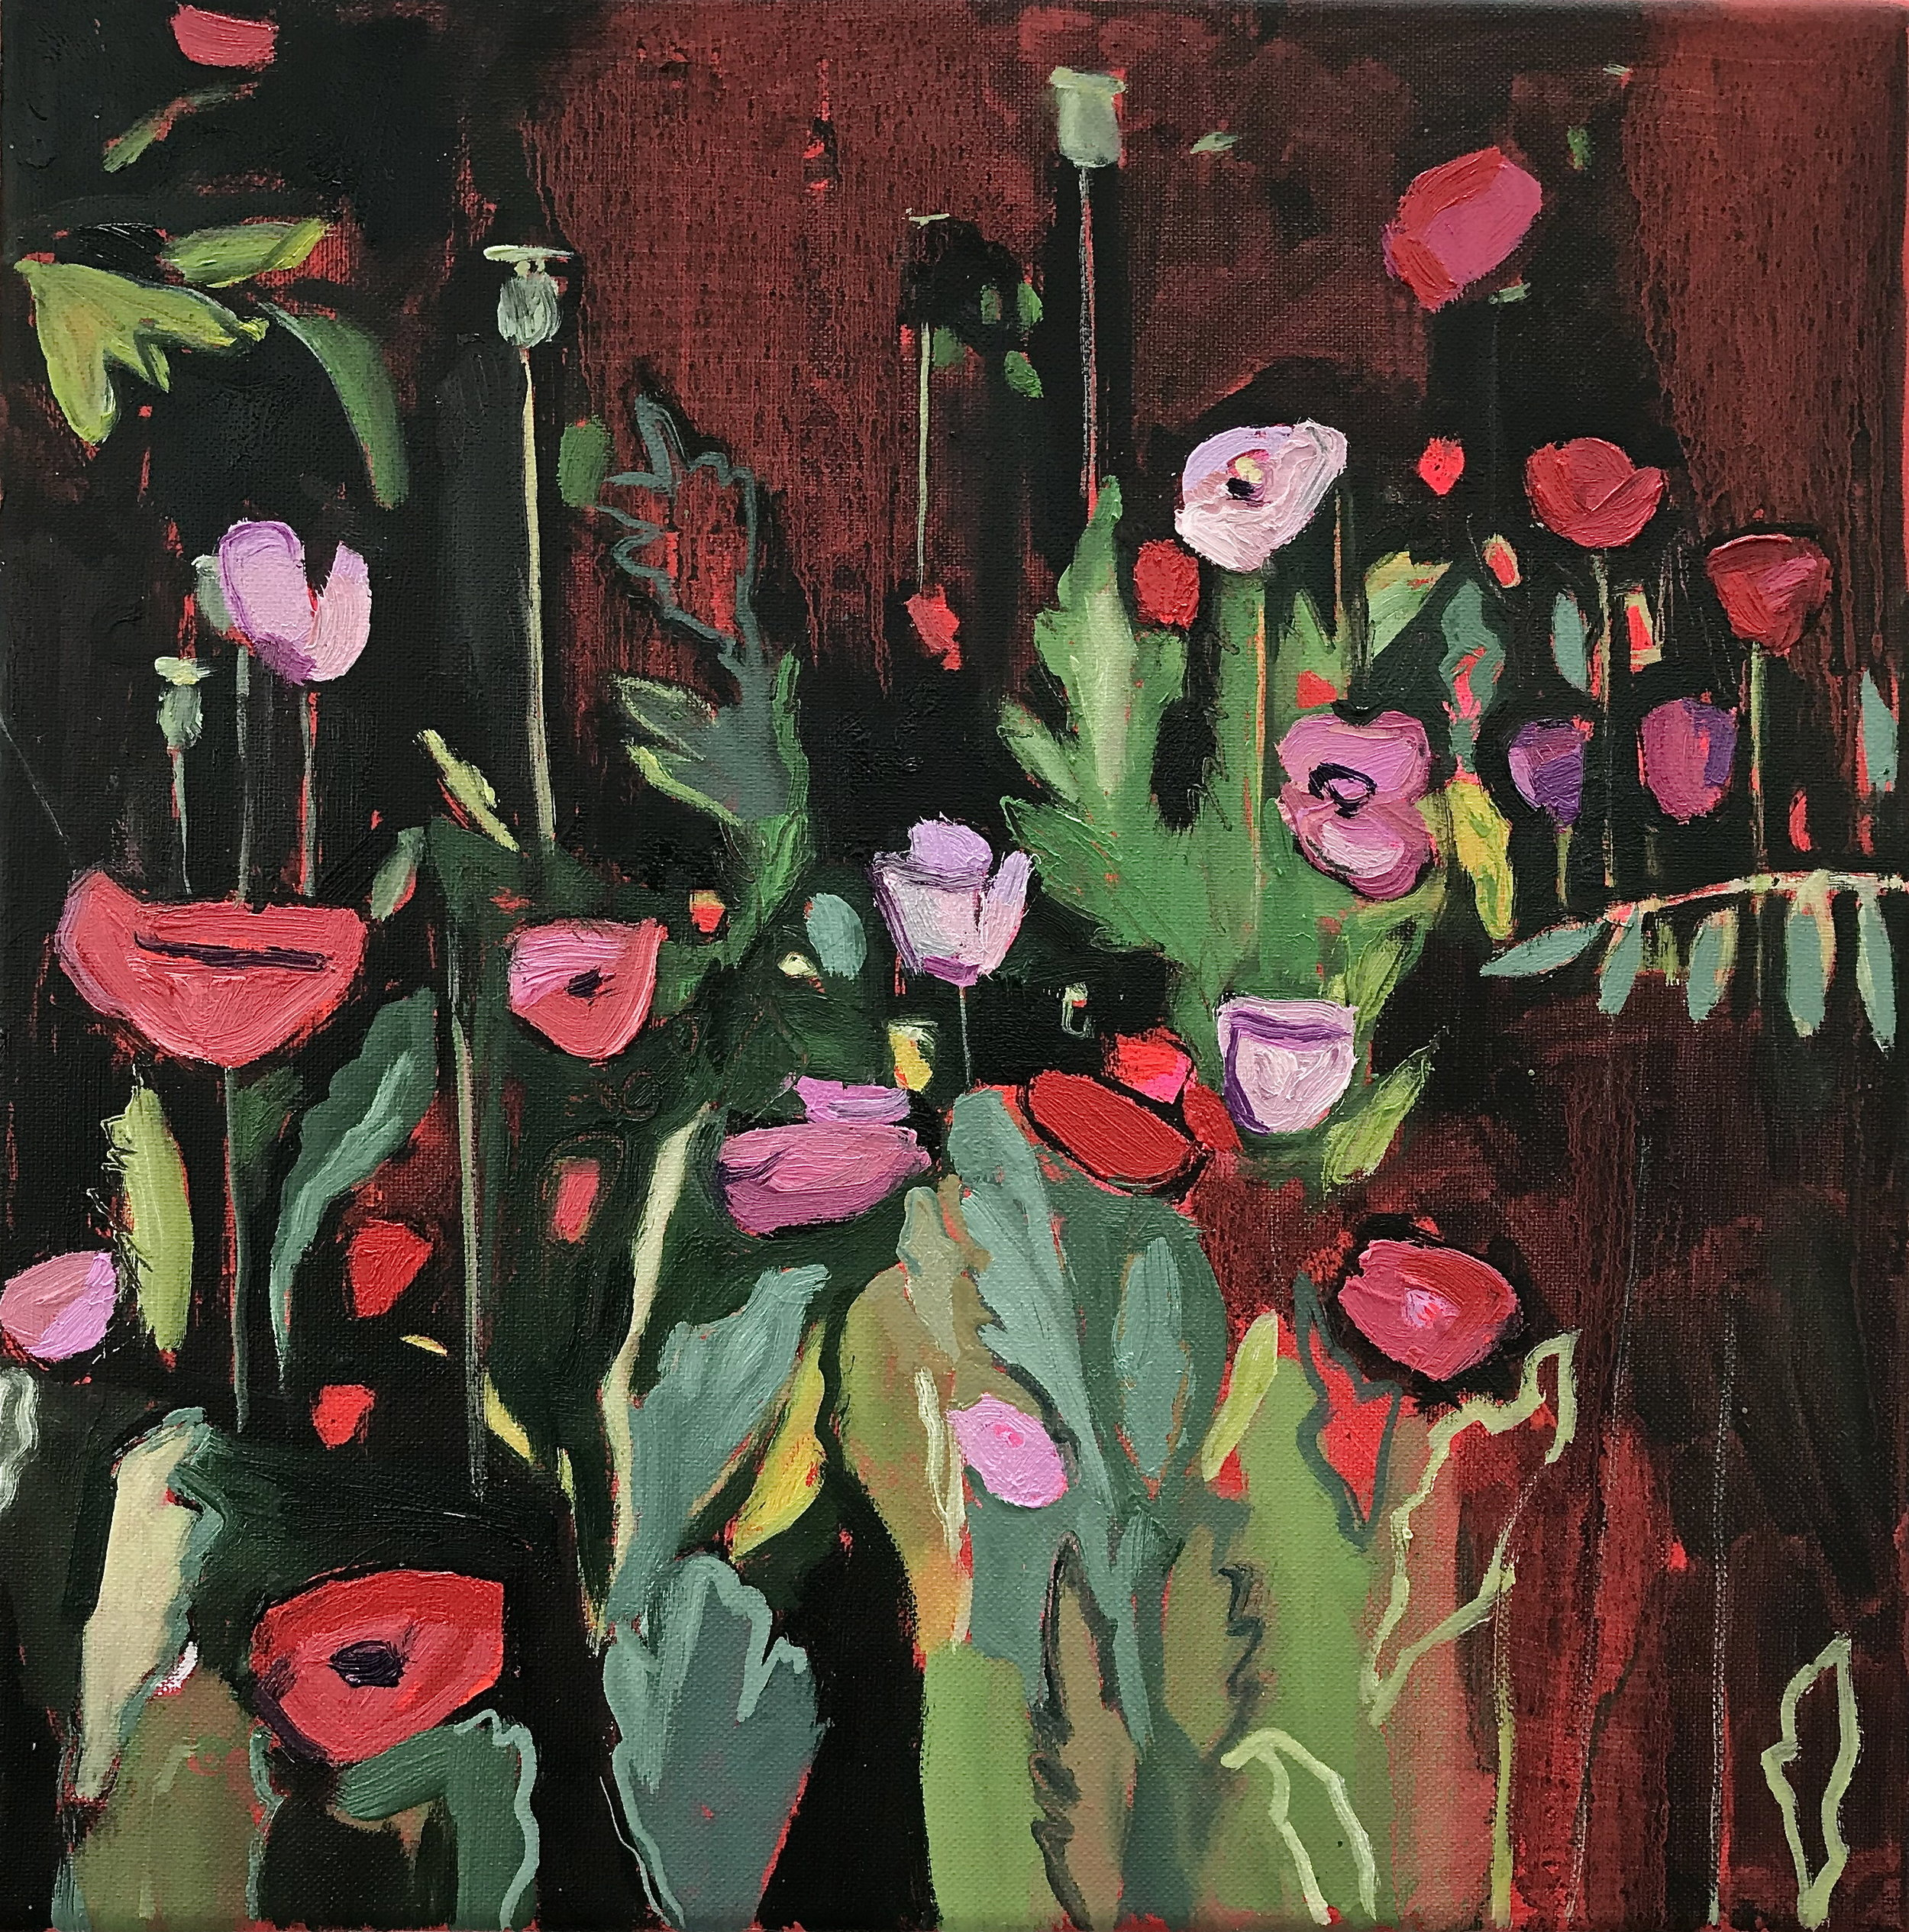 Diptych: Opium Poppies in the Oxford Botanic Gardens - right panel